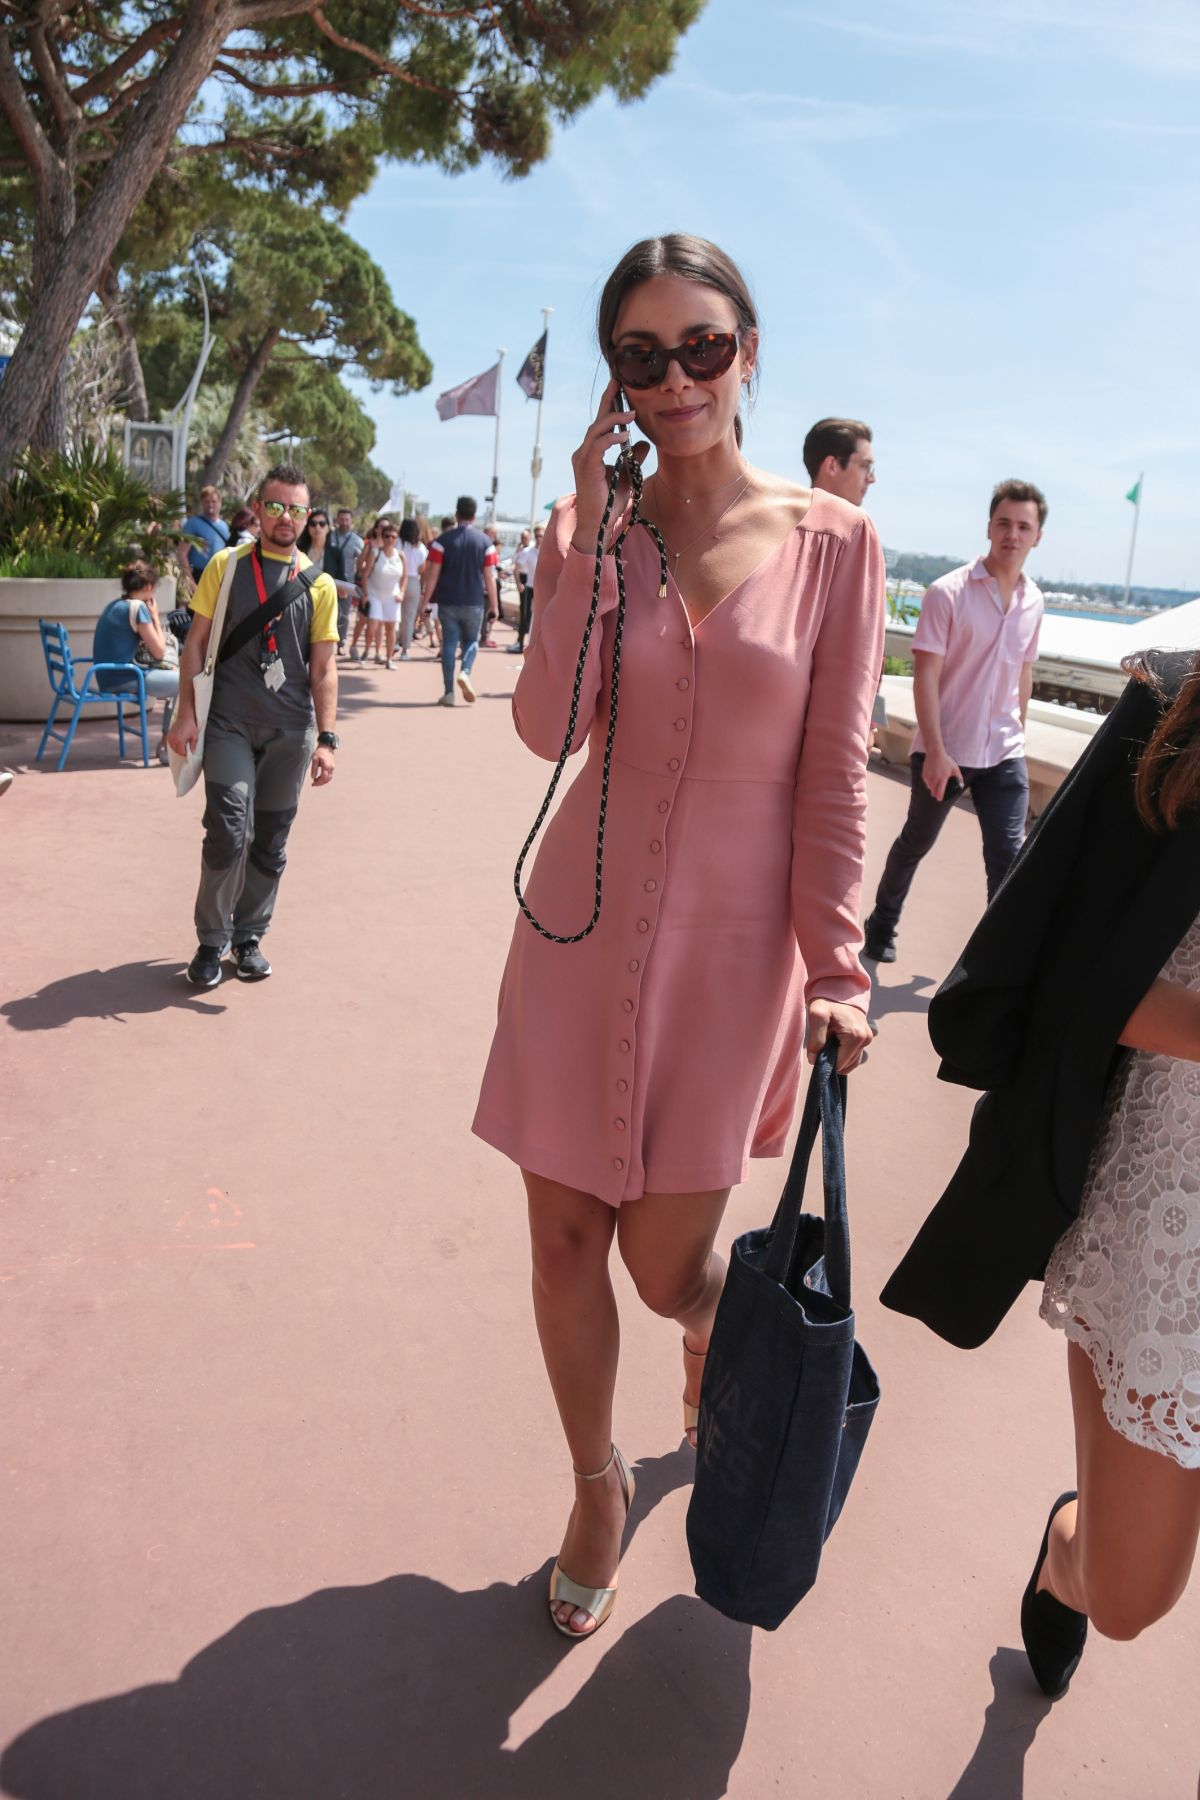 f3e9551fc272 Janina Uhse Sighting at the croisette in Cannes